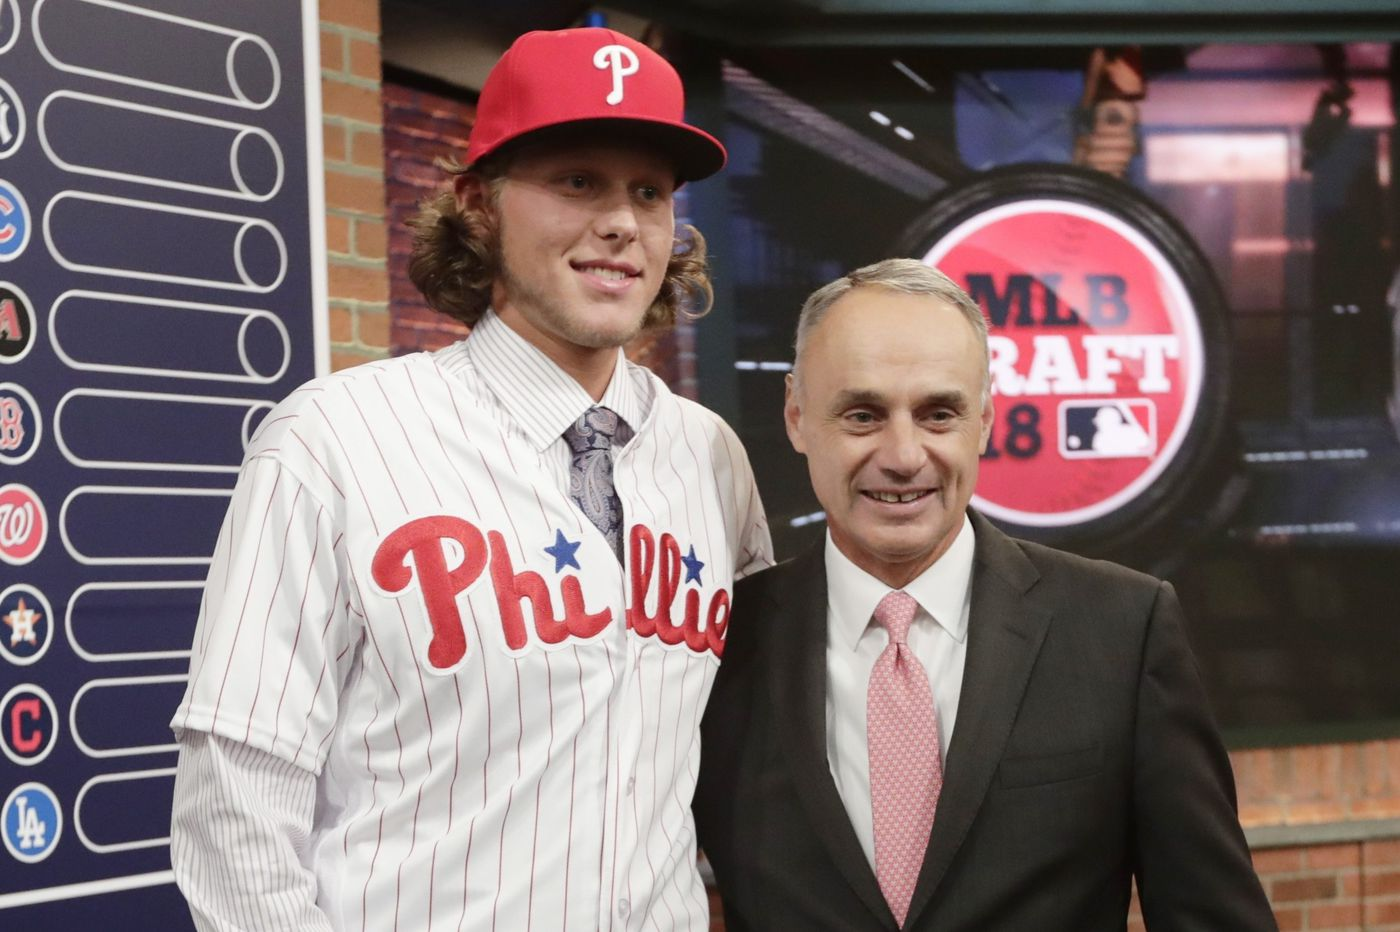 Wichita State's Alec Bohm has to be Mr. Right for Phillies